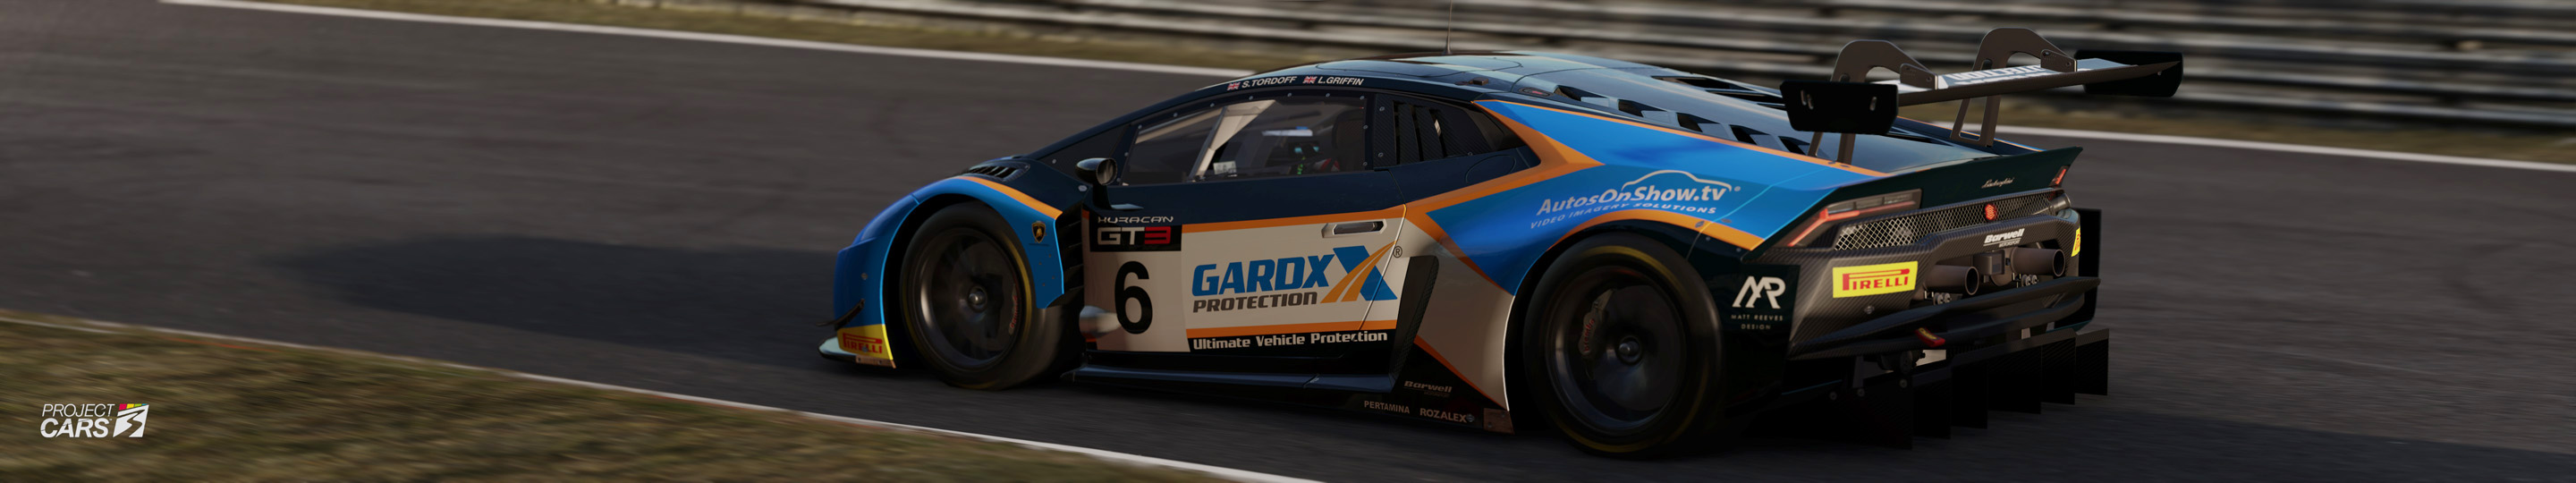 6 PROJECT CARS 3 GT3 at NORDSCHLEIFE copy.jpg